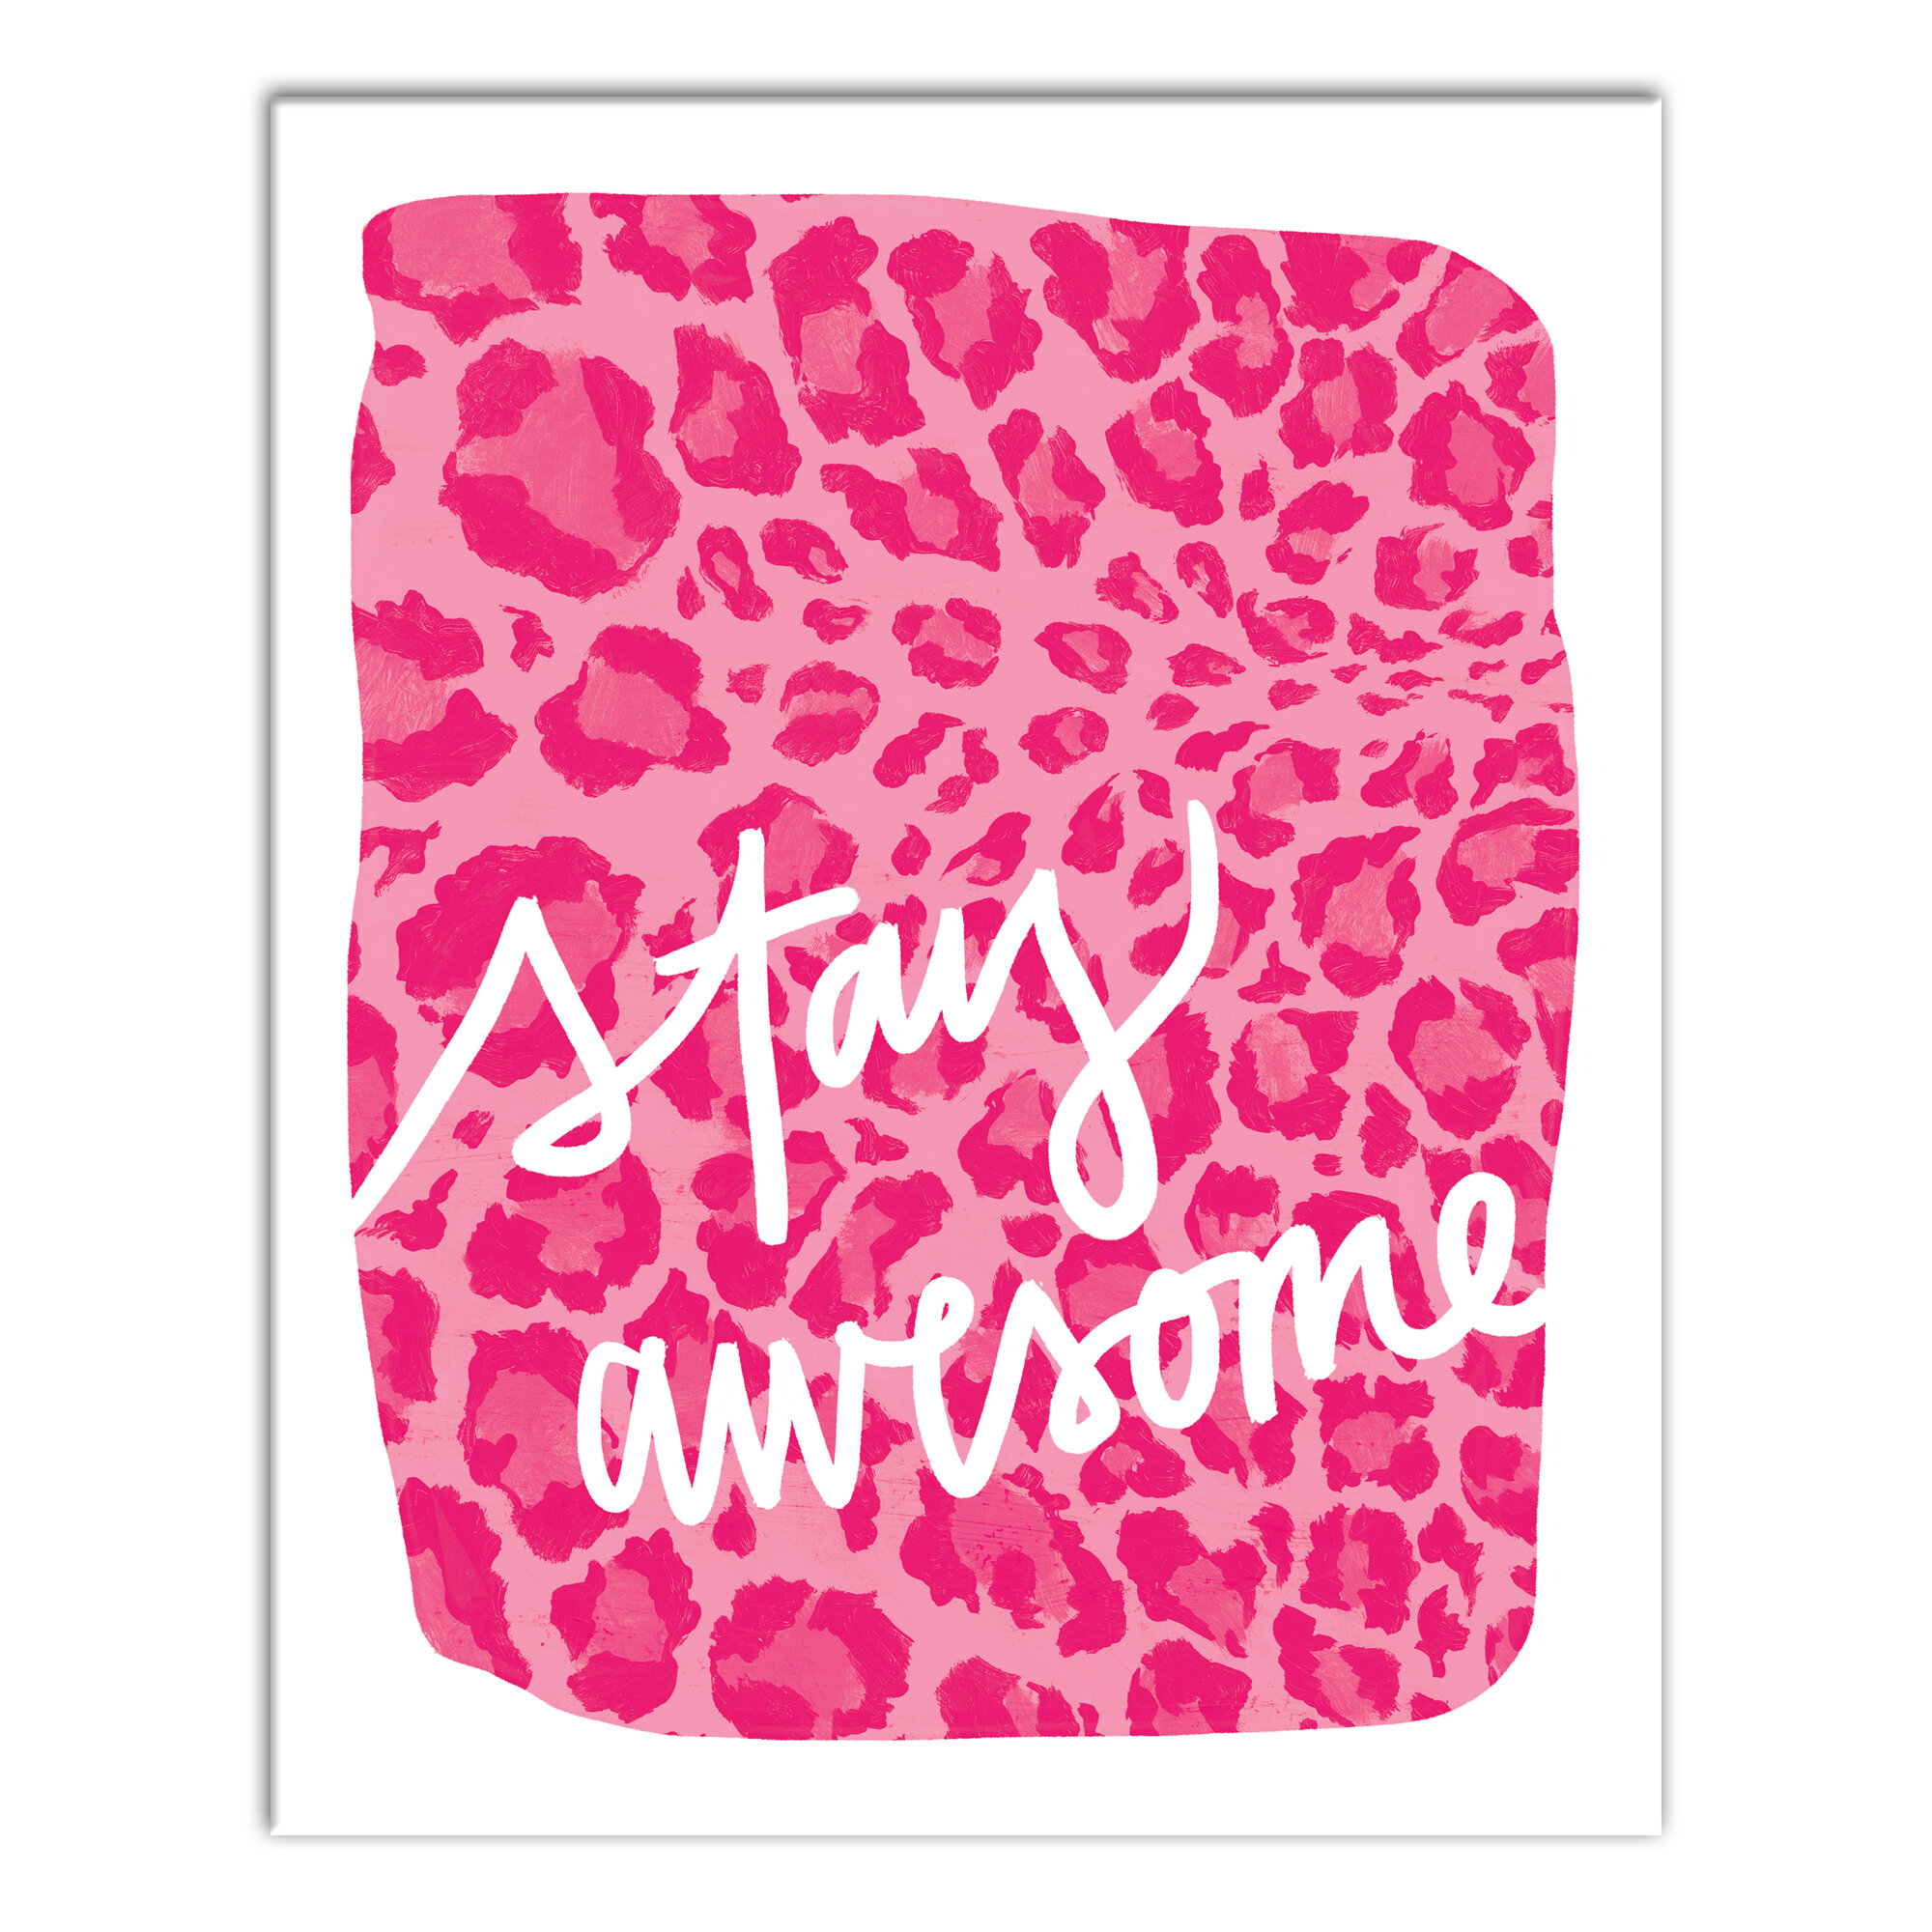 Blue Elephant Bowen Stay Awesome Canvas Art Wayfair Co Uk